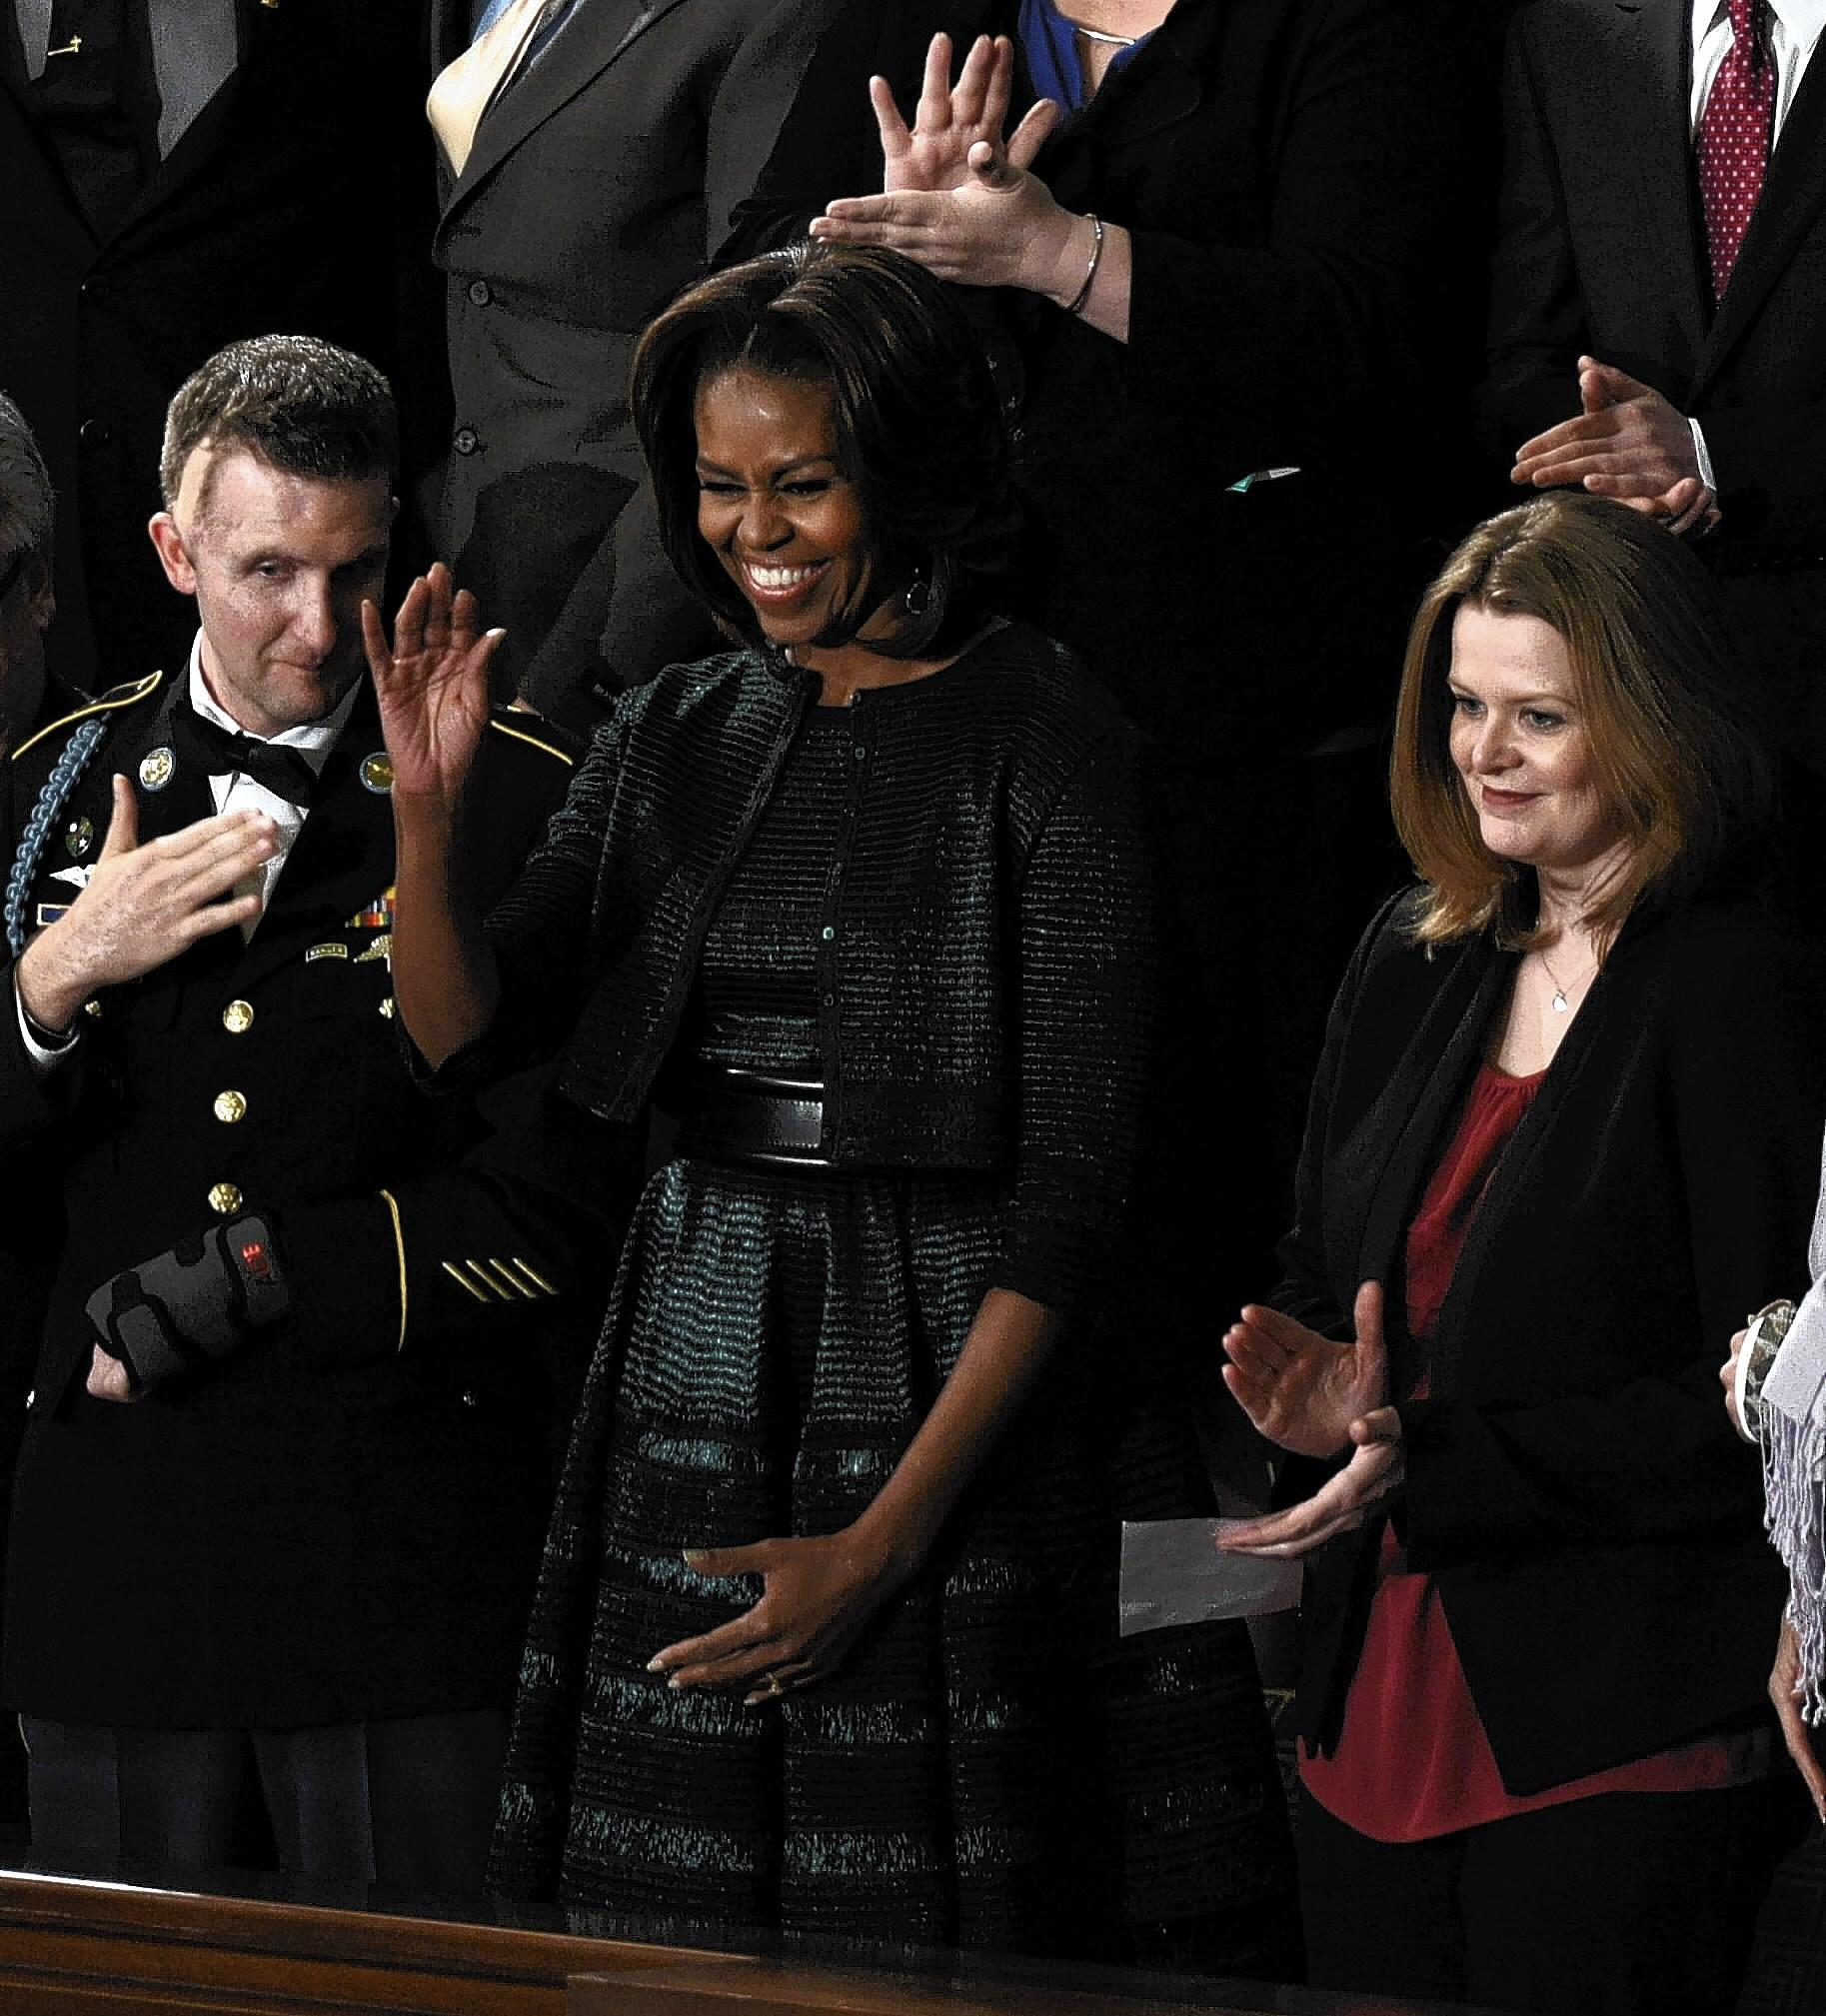 Misty DeMars, right, stands with first lady Michelle Obama before President Barack Obama's State of the Union address Tuesday. At left is Army Ranger 2nd Lt. Cory Remsburg.